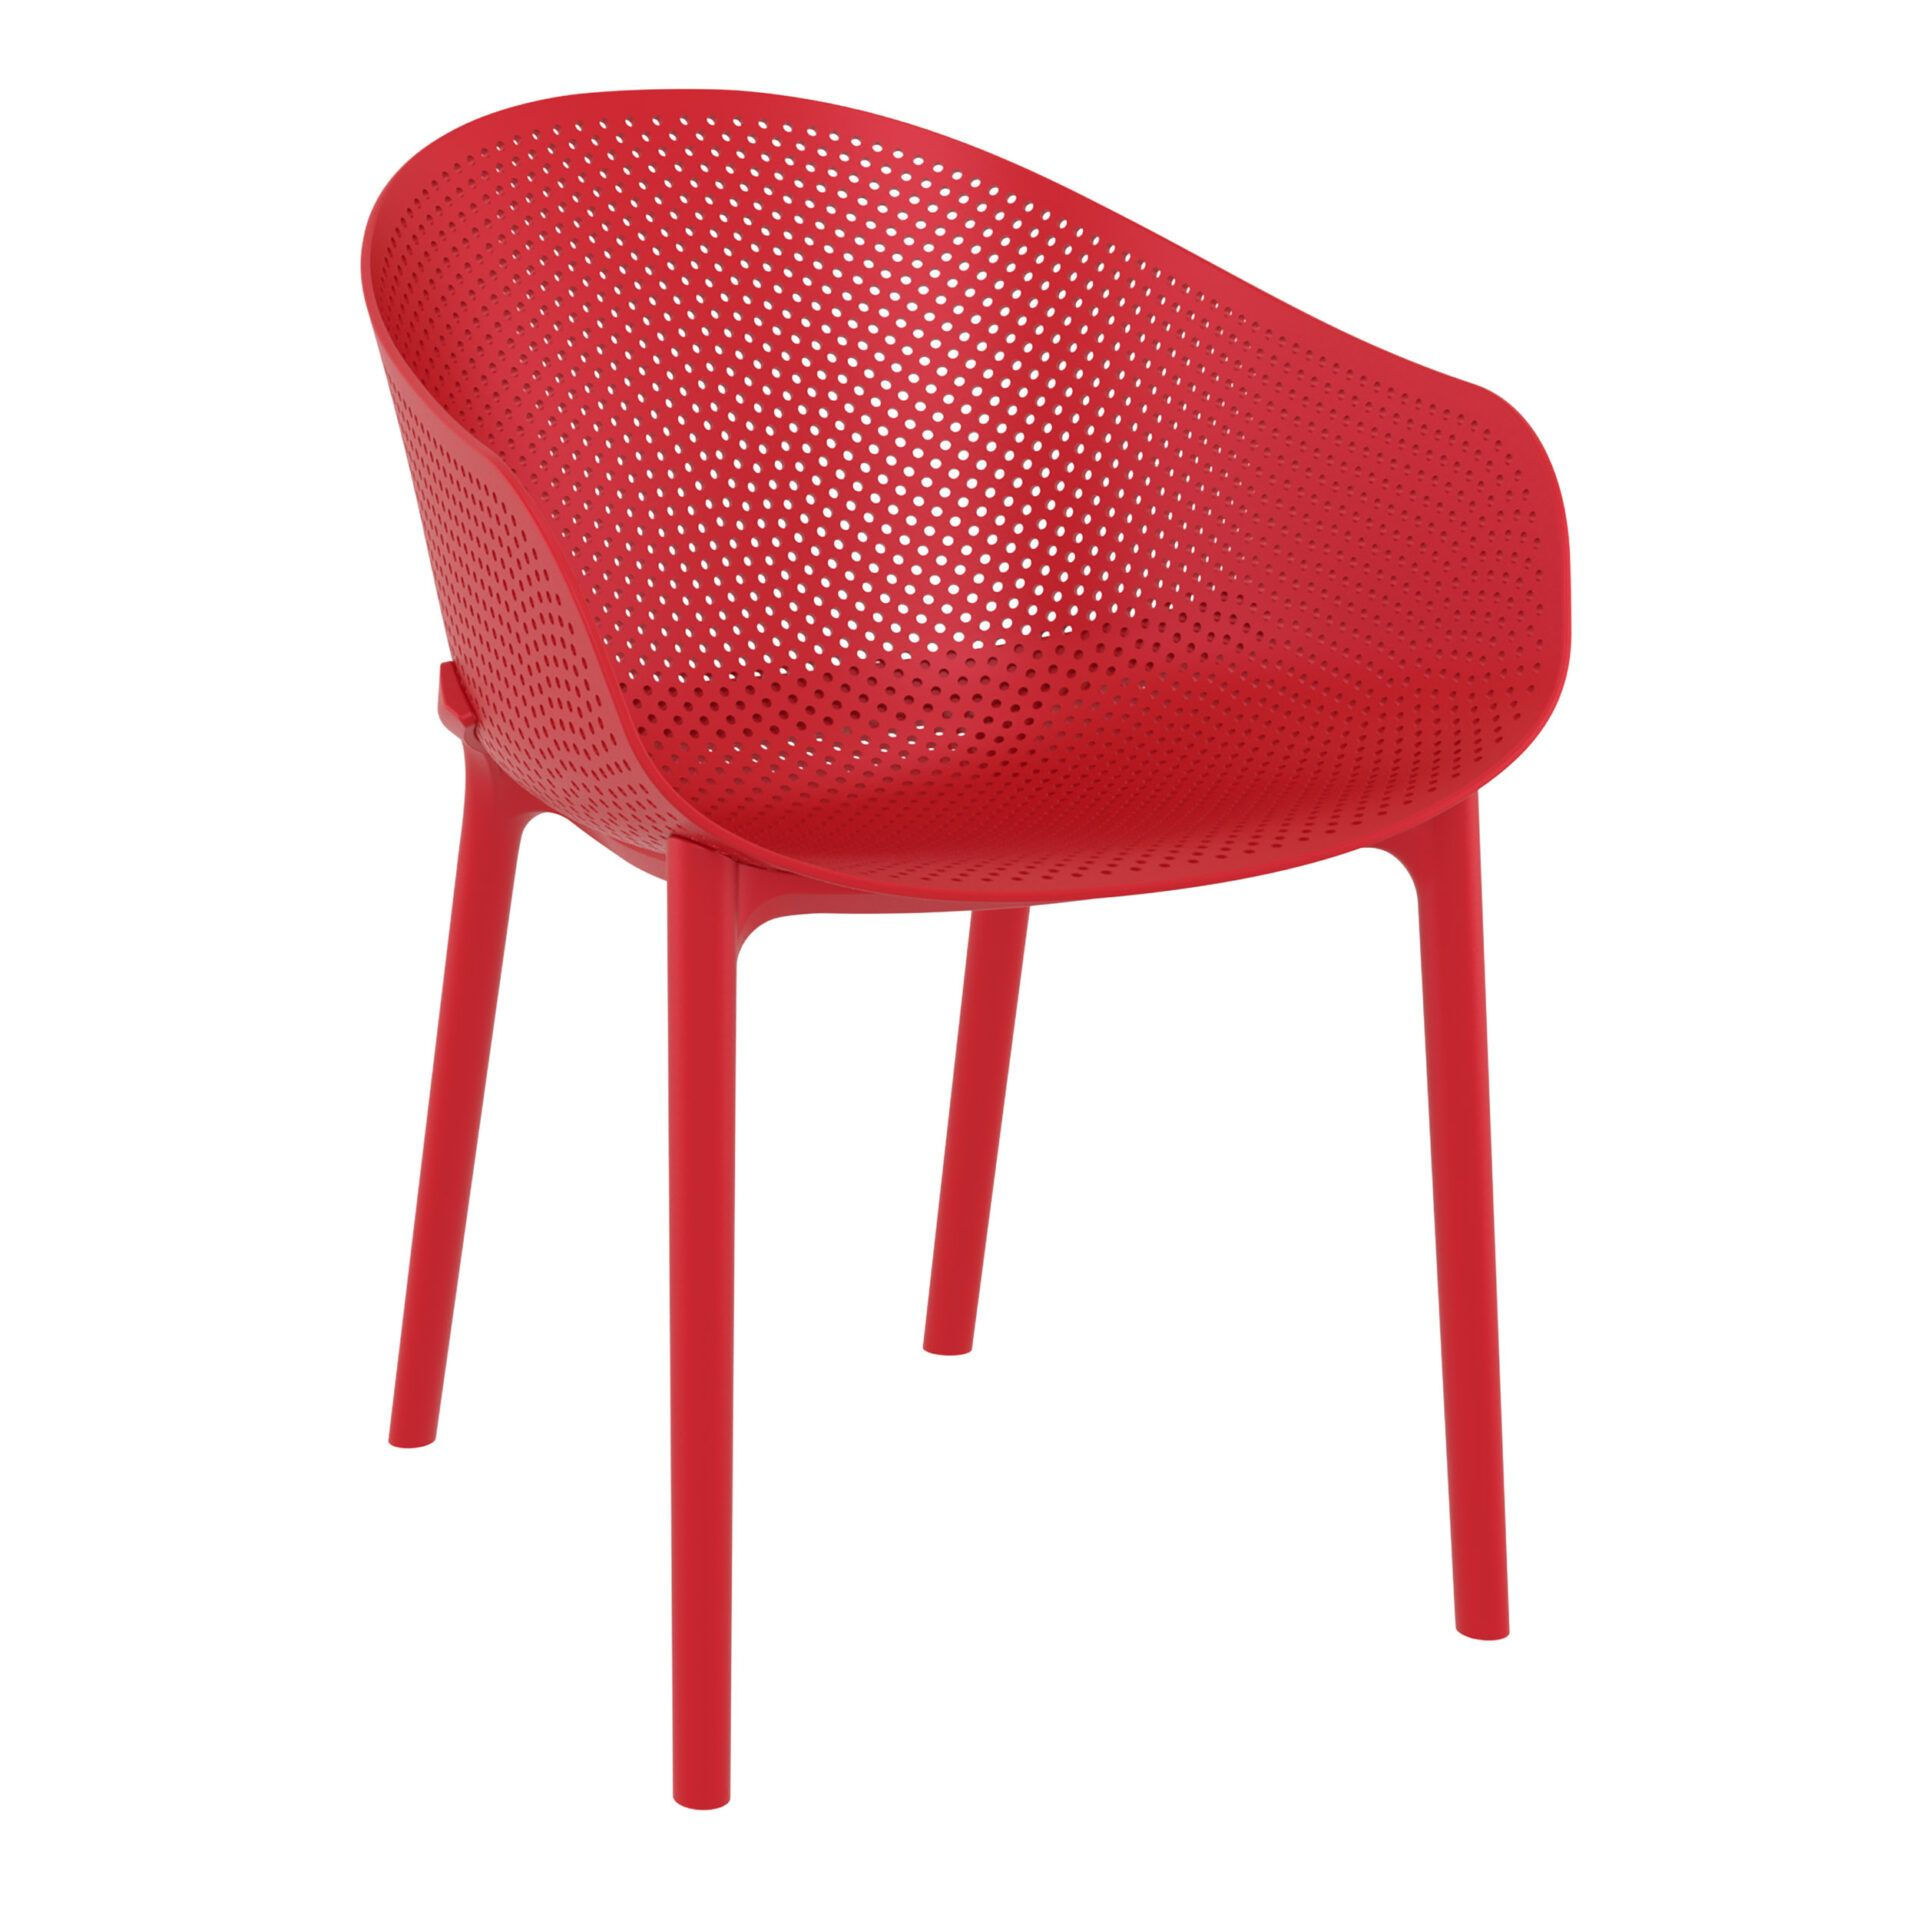 outdoor seating polypropylene sky chair red front side